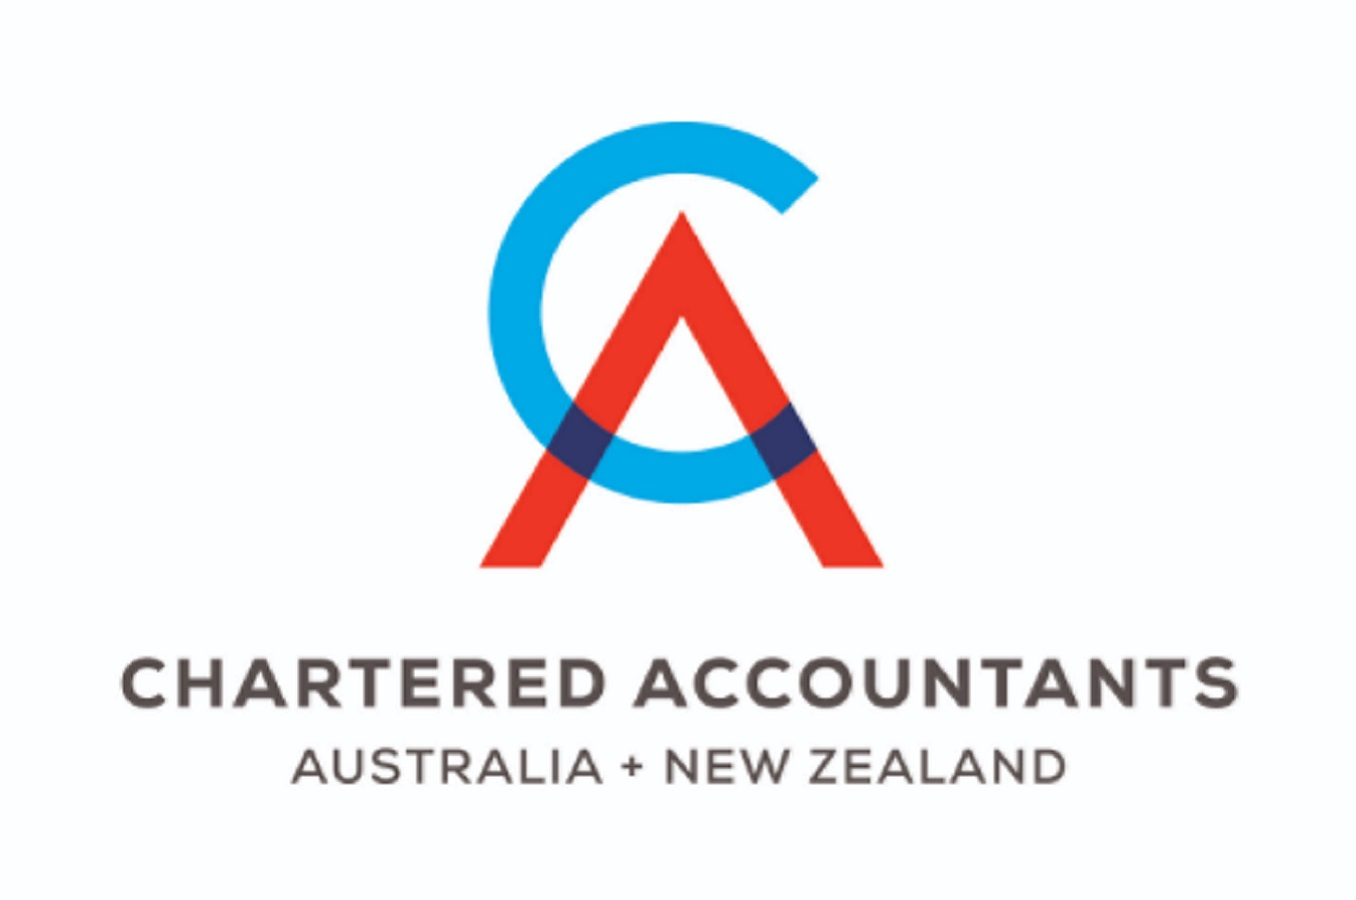 LinkedIn for Professionals Workshop London: Kath Sloggett to present at Chartered Accountants ANZ